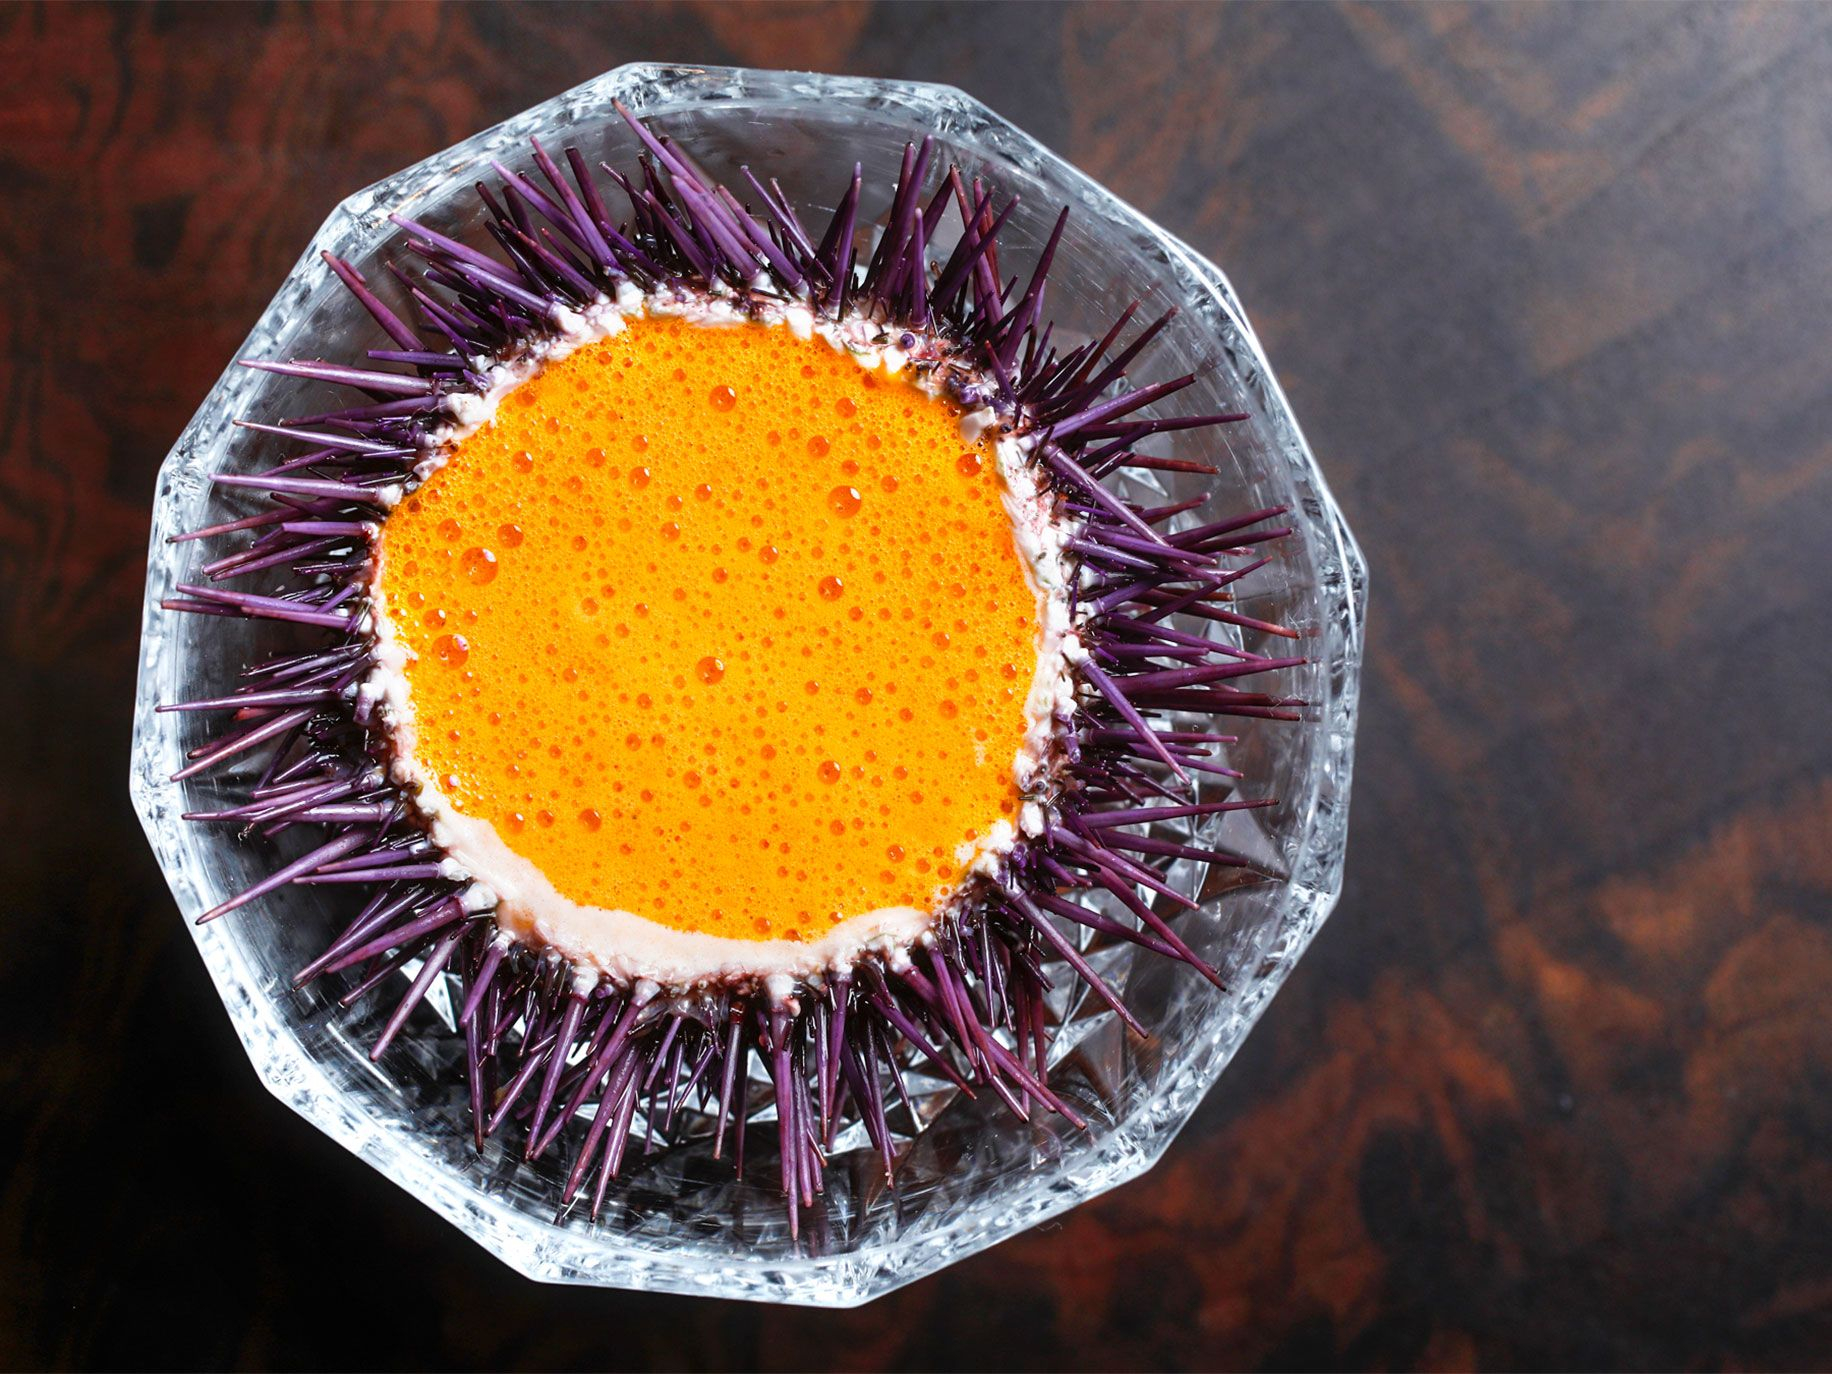 The shell of a sea urchin acts as a bowl for seafood with cauliflower foam and lobster sauce.